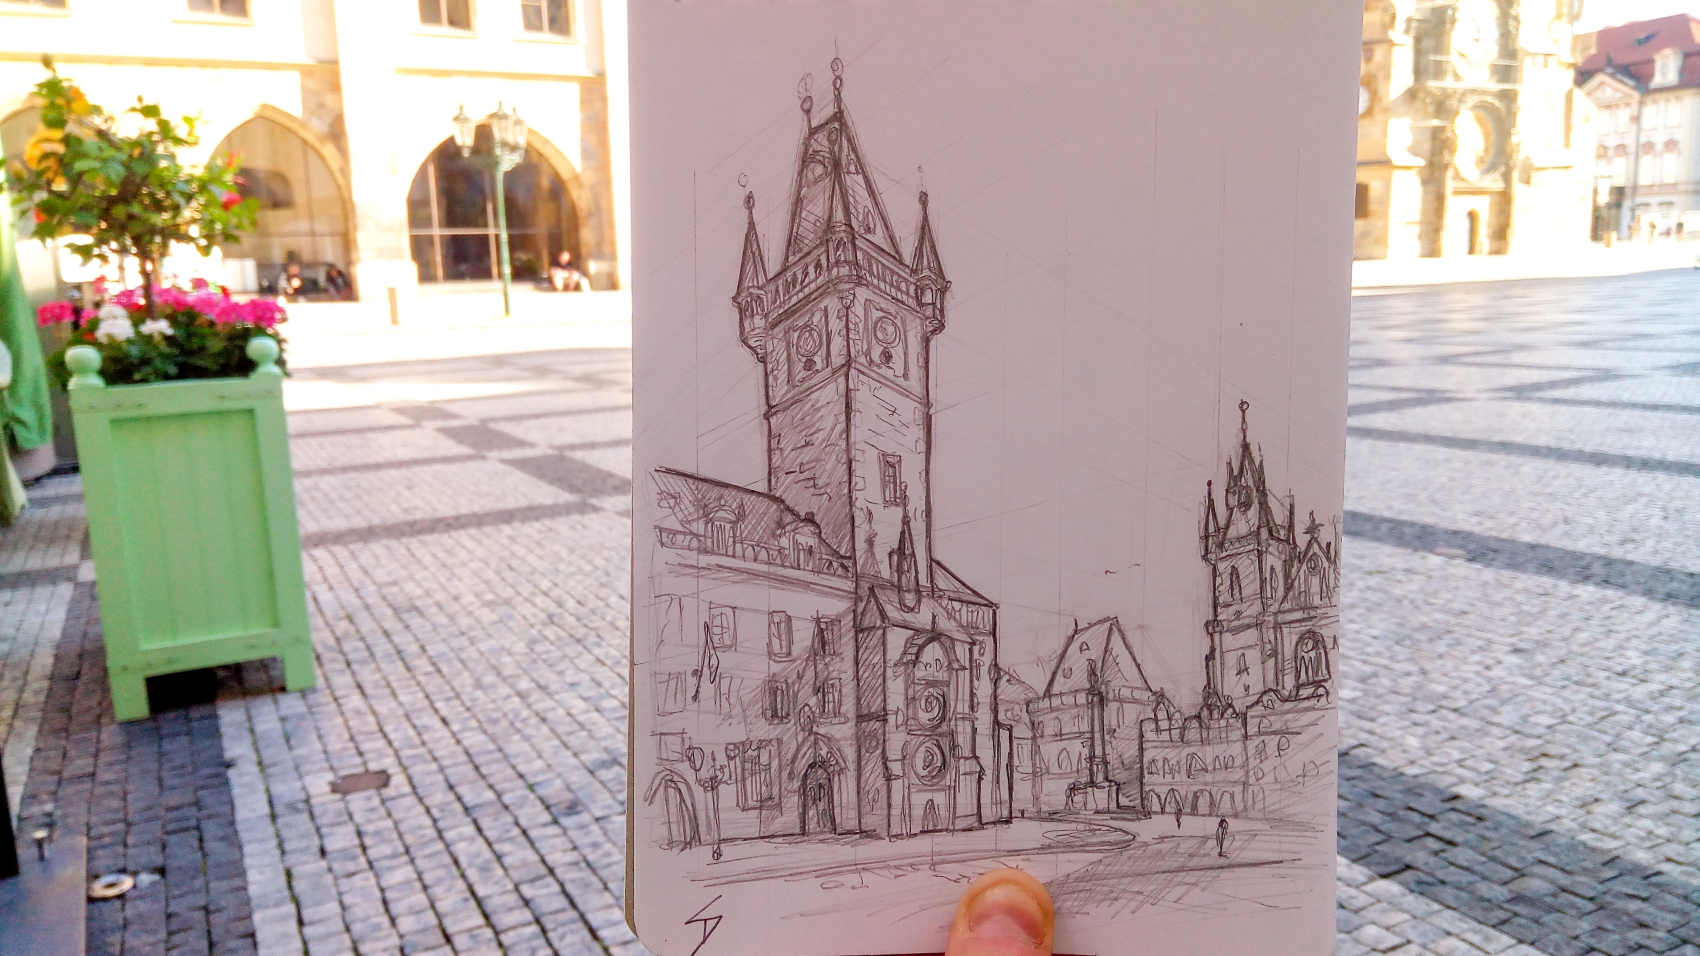 Urban photo art – Old Town Square, Prague, Czech Republic. 'View of Prague's historic Old Town Square.' Watch me sketch the drawing - https://youtu.be/PDclaI1LY40 . sketchbookexplorer.com @davidasutton @sketchbookexplorer Facebook.com/davidanthonysutton #sketch #drawing #art #prague #pragueoldtownsquare #pragueastronomicalclock #praha #travel #travelblog #czechrepublic